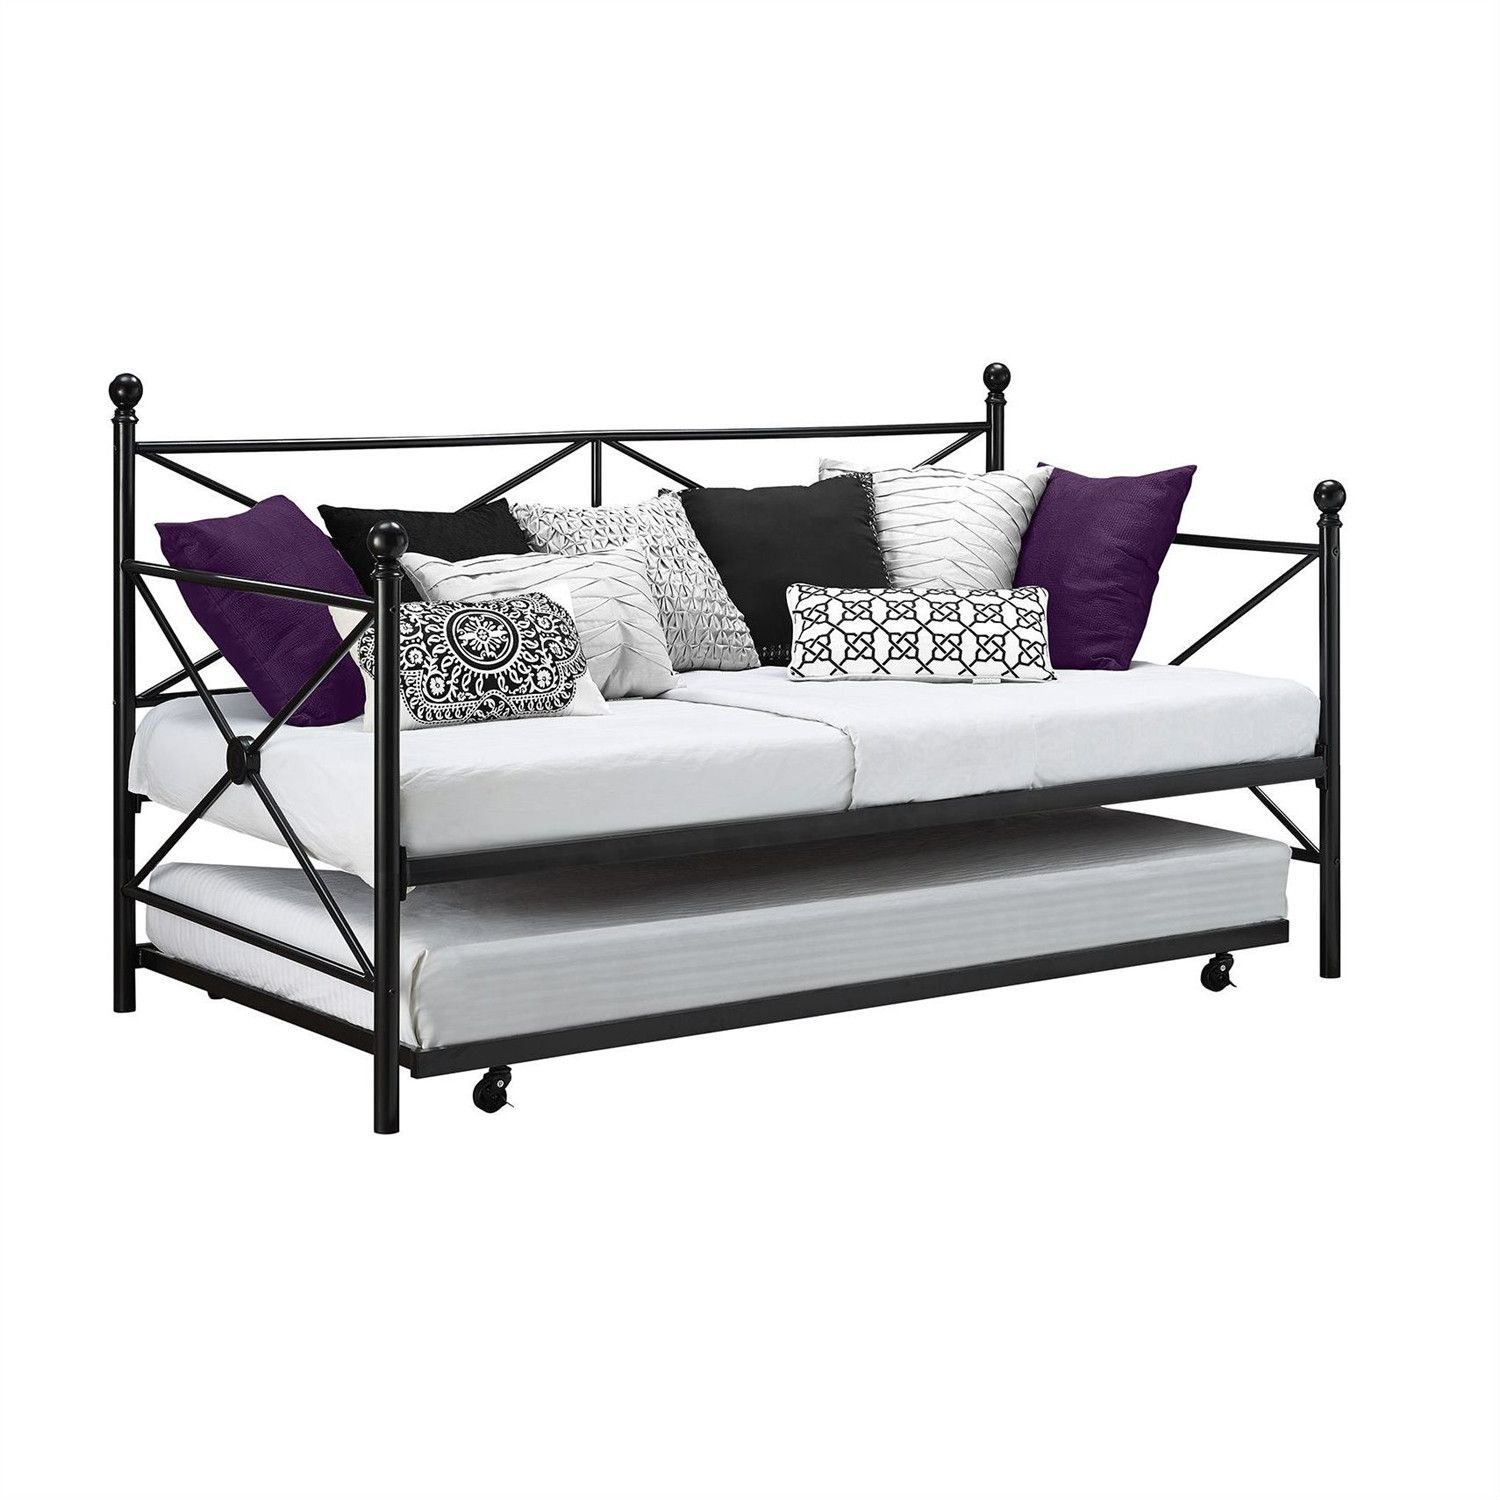 play the perfect hostess with this twin size contemporary daybed and